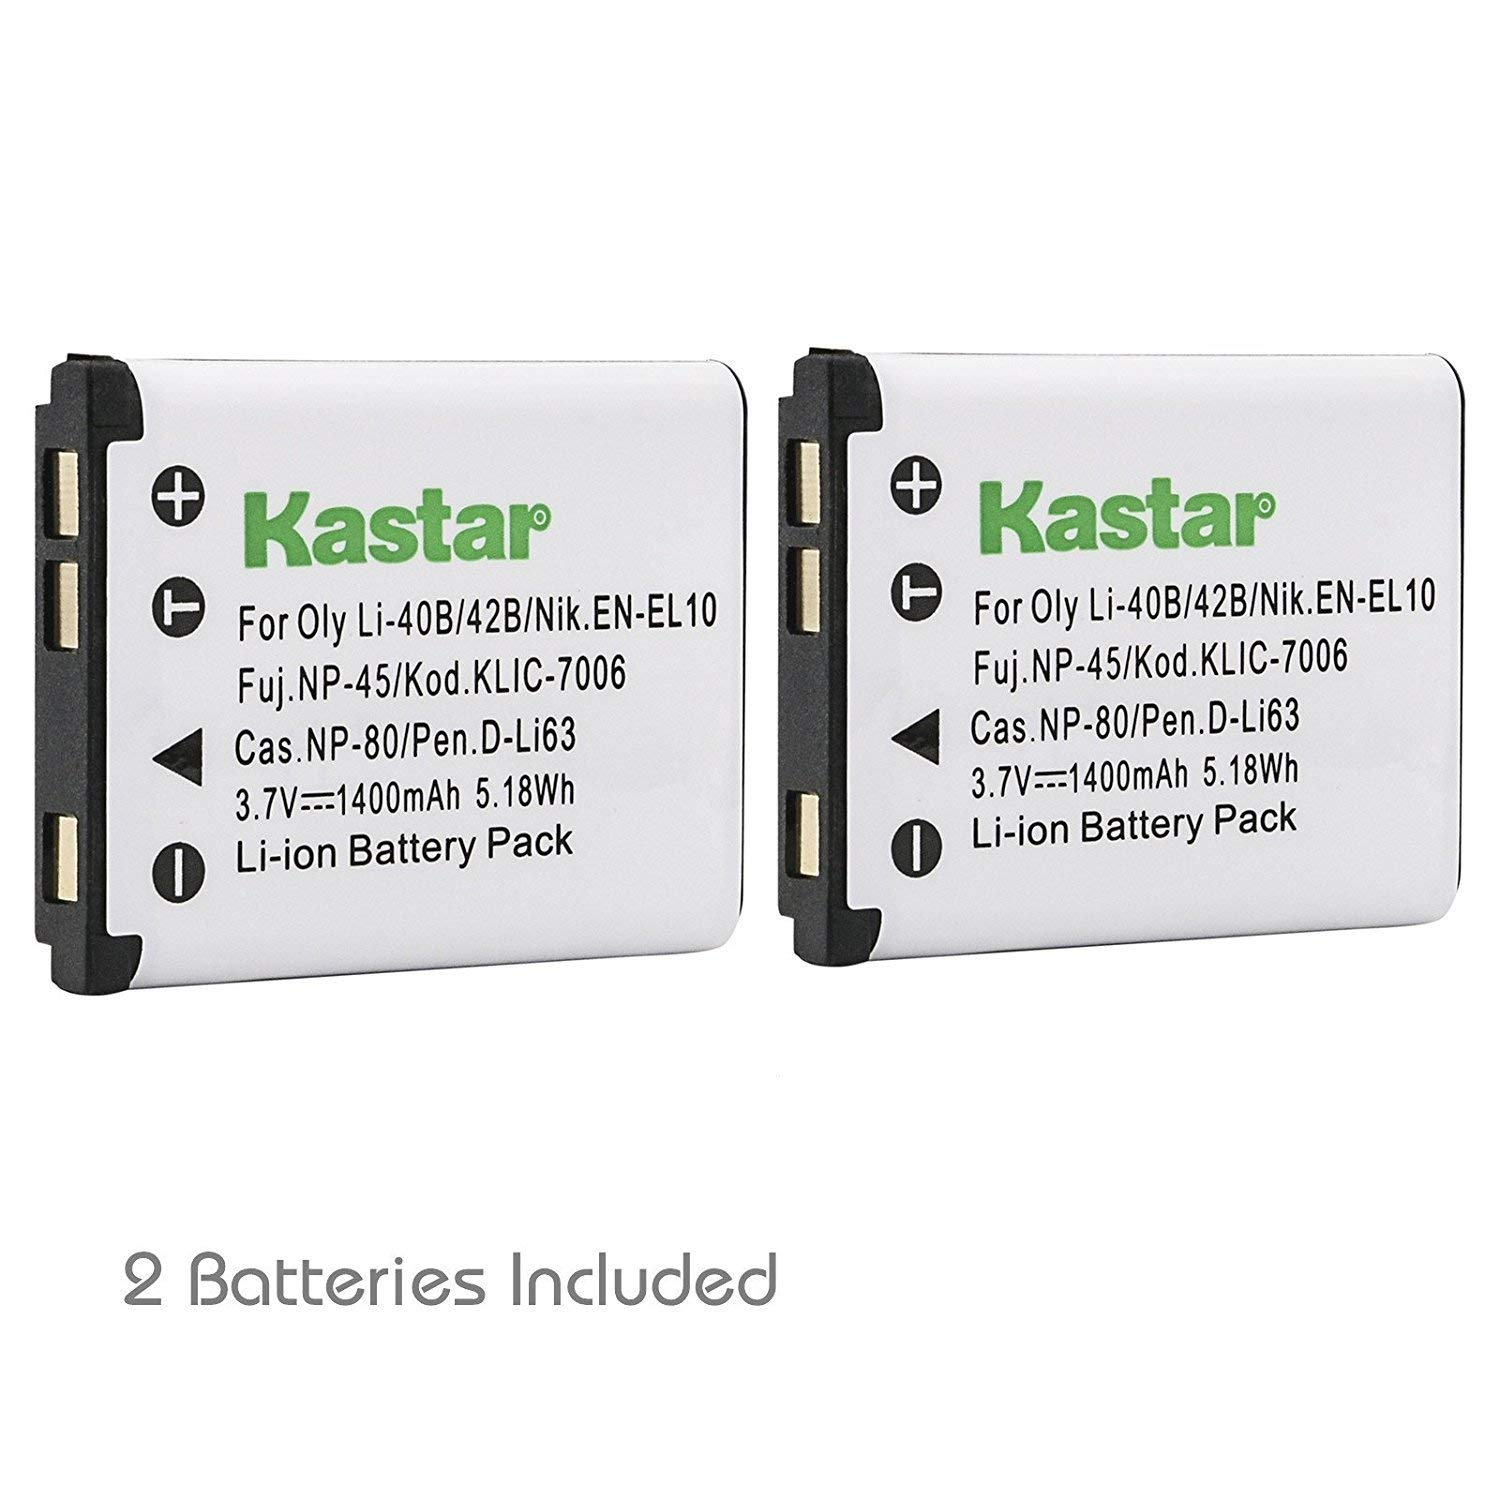 Kastar 2 Pack Battery for Fujifilm NP-45 NP-45A NP-45B and Fuji FinePix J10 J12 J15 J15fd J20 J25 J26 J27 J30 J35 J38 J40 J100 J110W J120 J150W J210 J250 JV100 JV105 JV150 JV155 JV160 JV200JX205 JX250